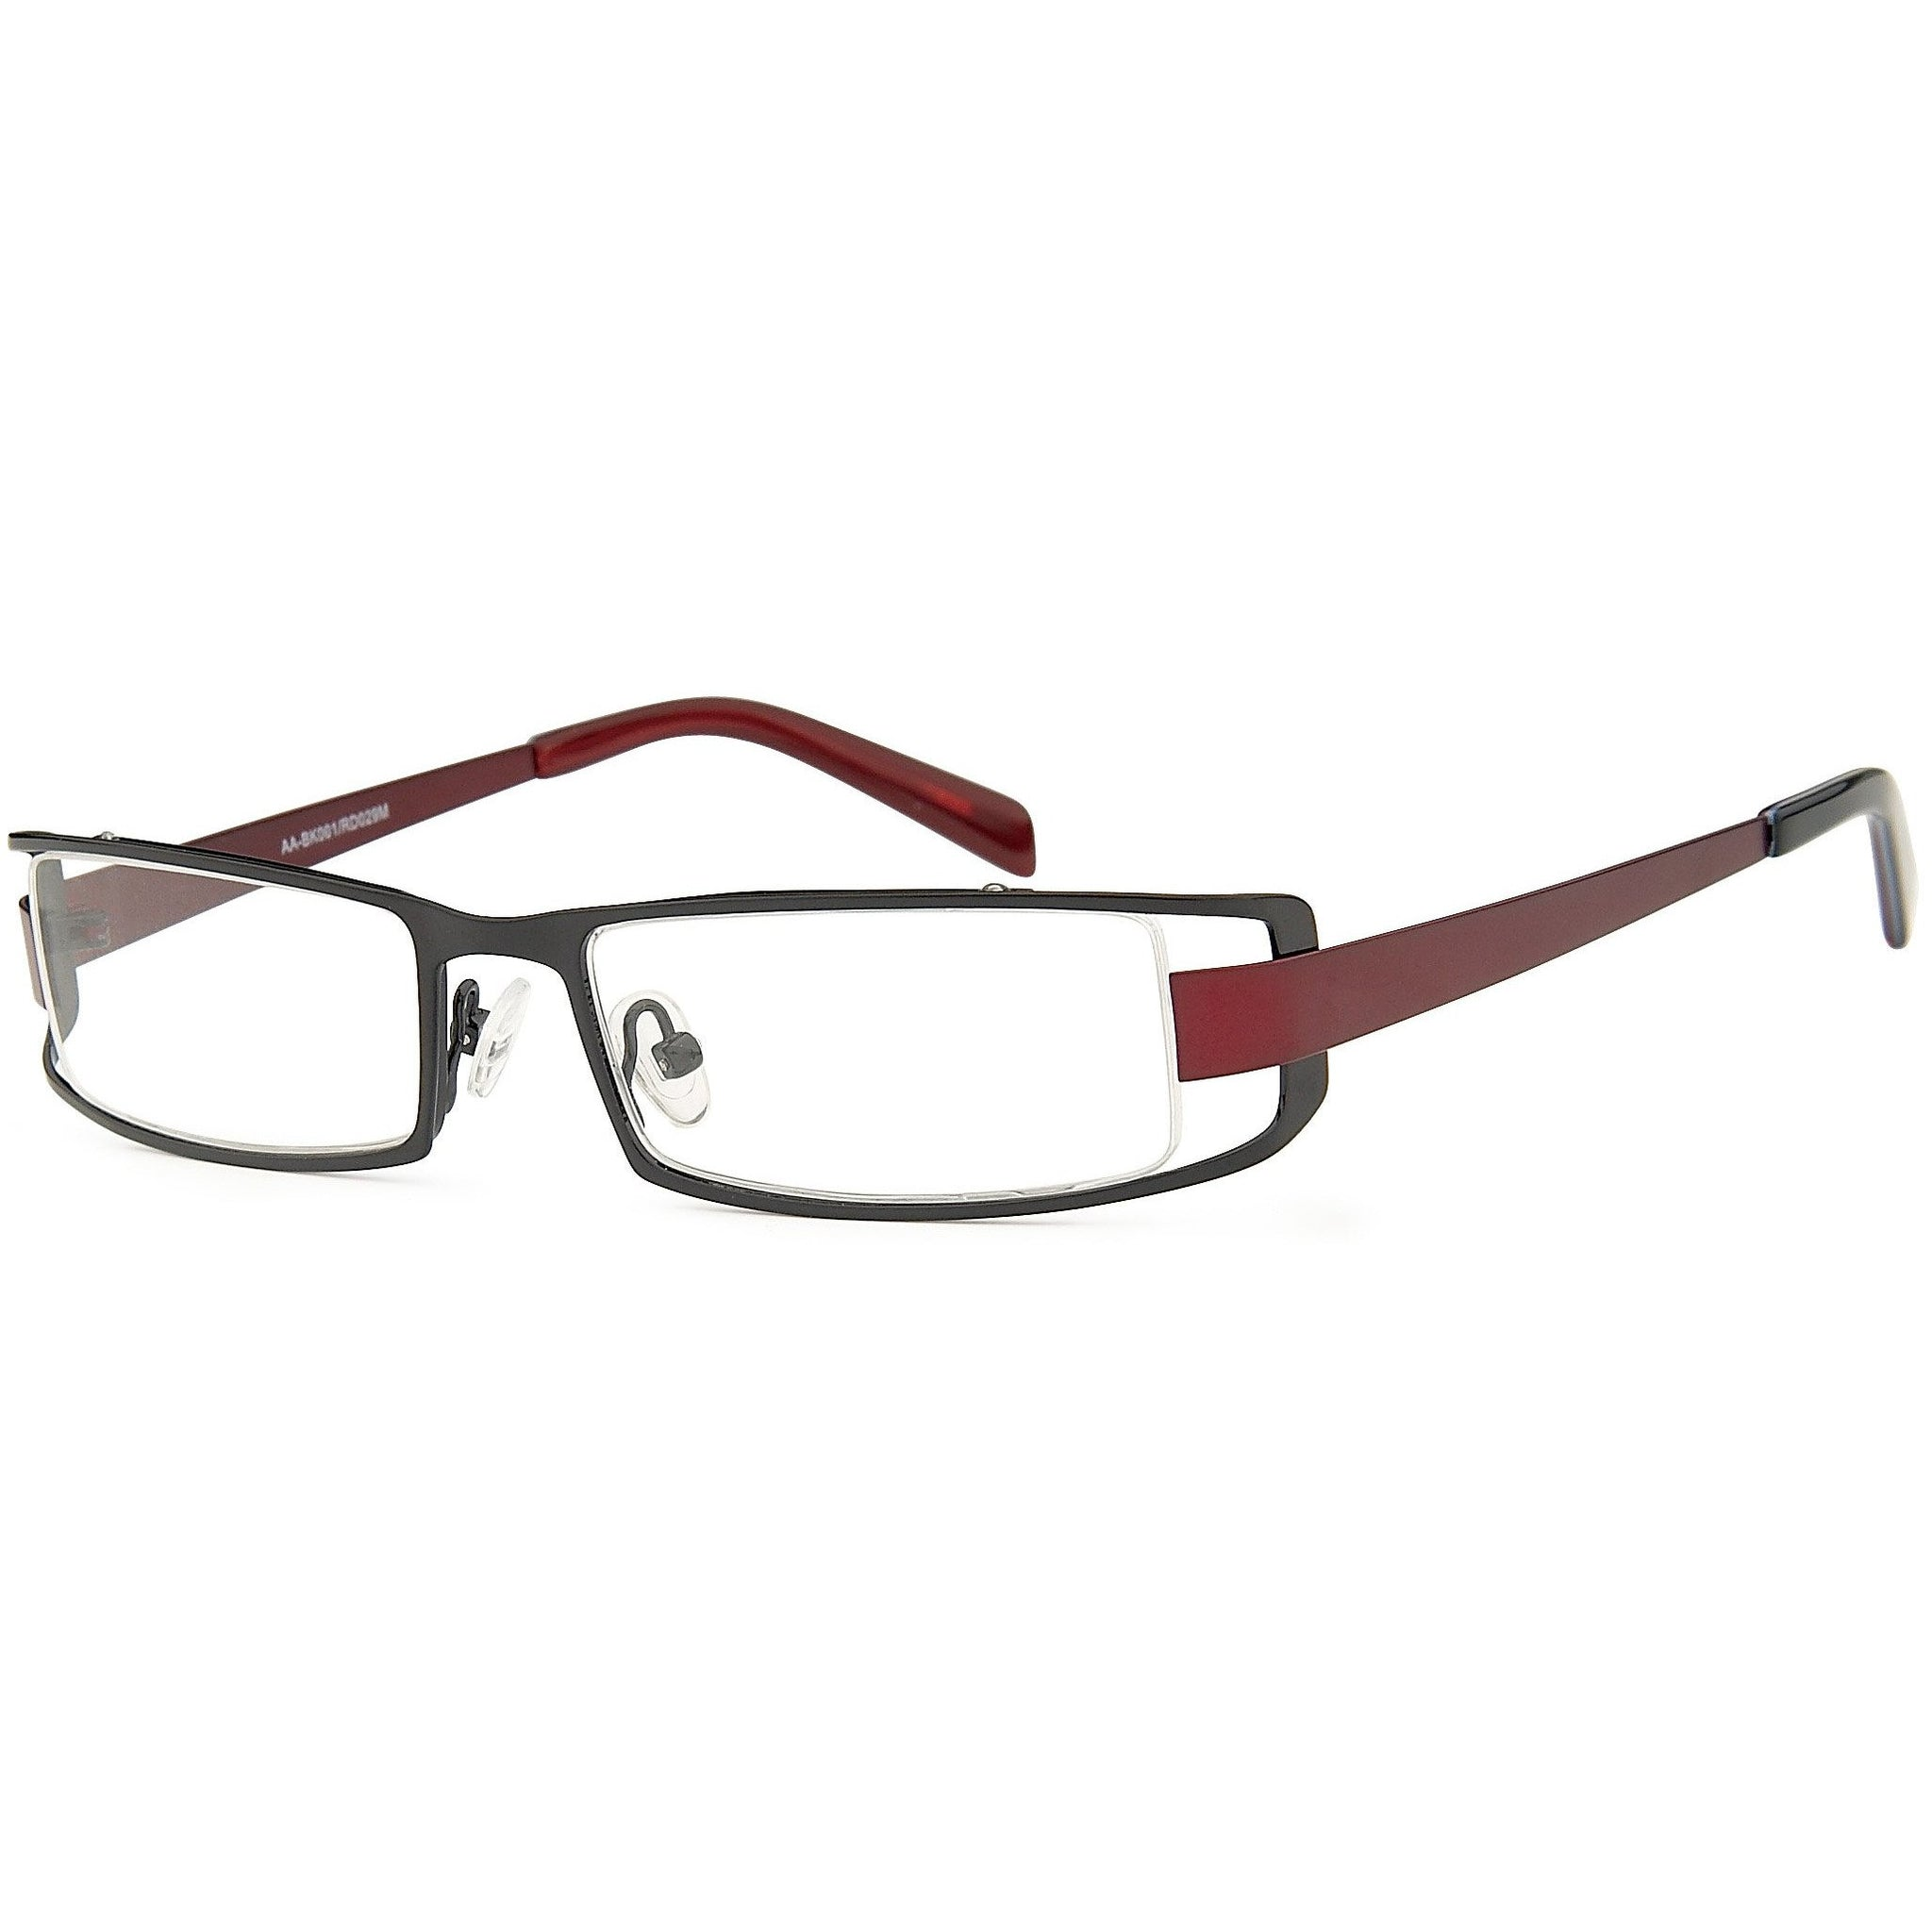 Leonardo Prescription Glasses DC 91 Eyeglasses Frame